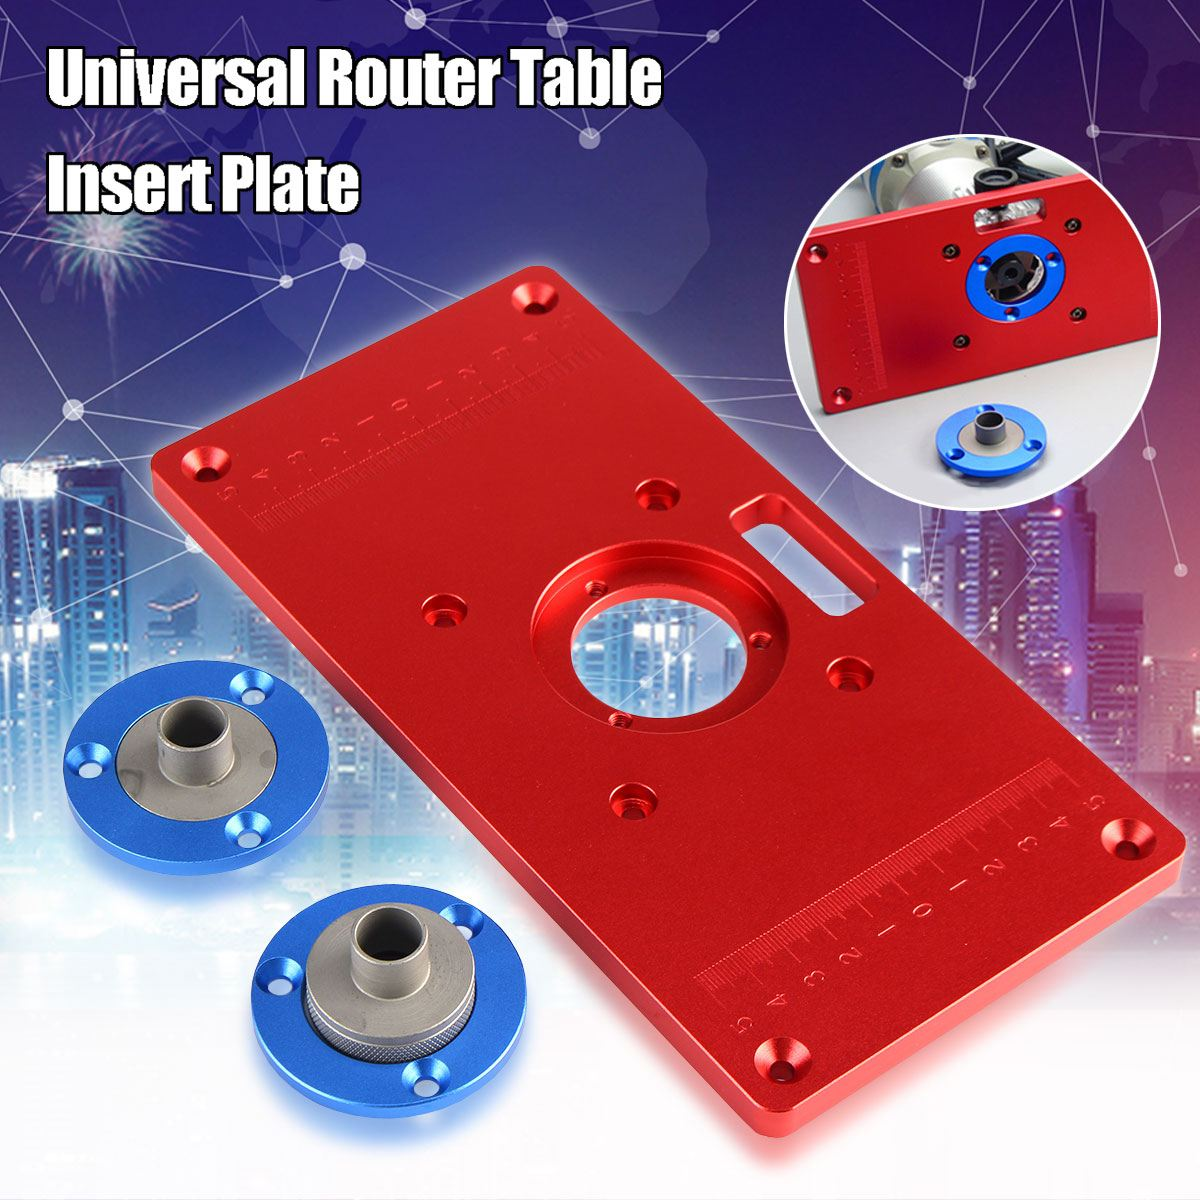 235x120x10mm universal router table insert plate for diy woodworking high quality universal router table insert plate for diy woodworking wood router trimmer models engraving machine keyboard keysfo Image collections